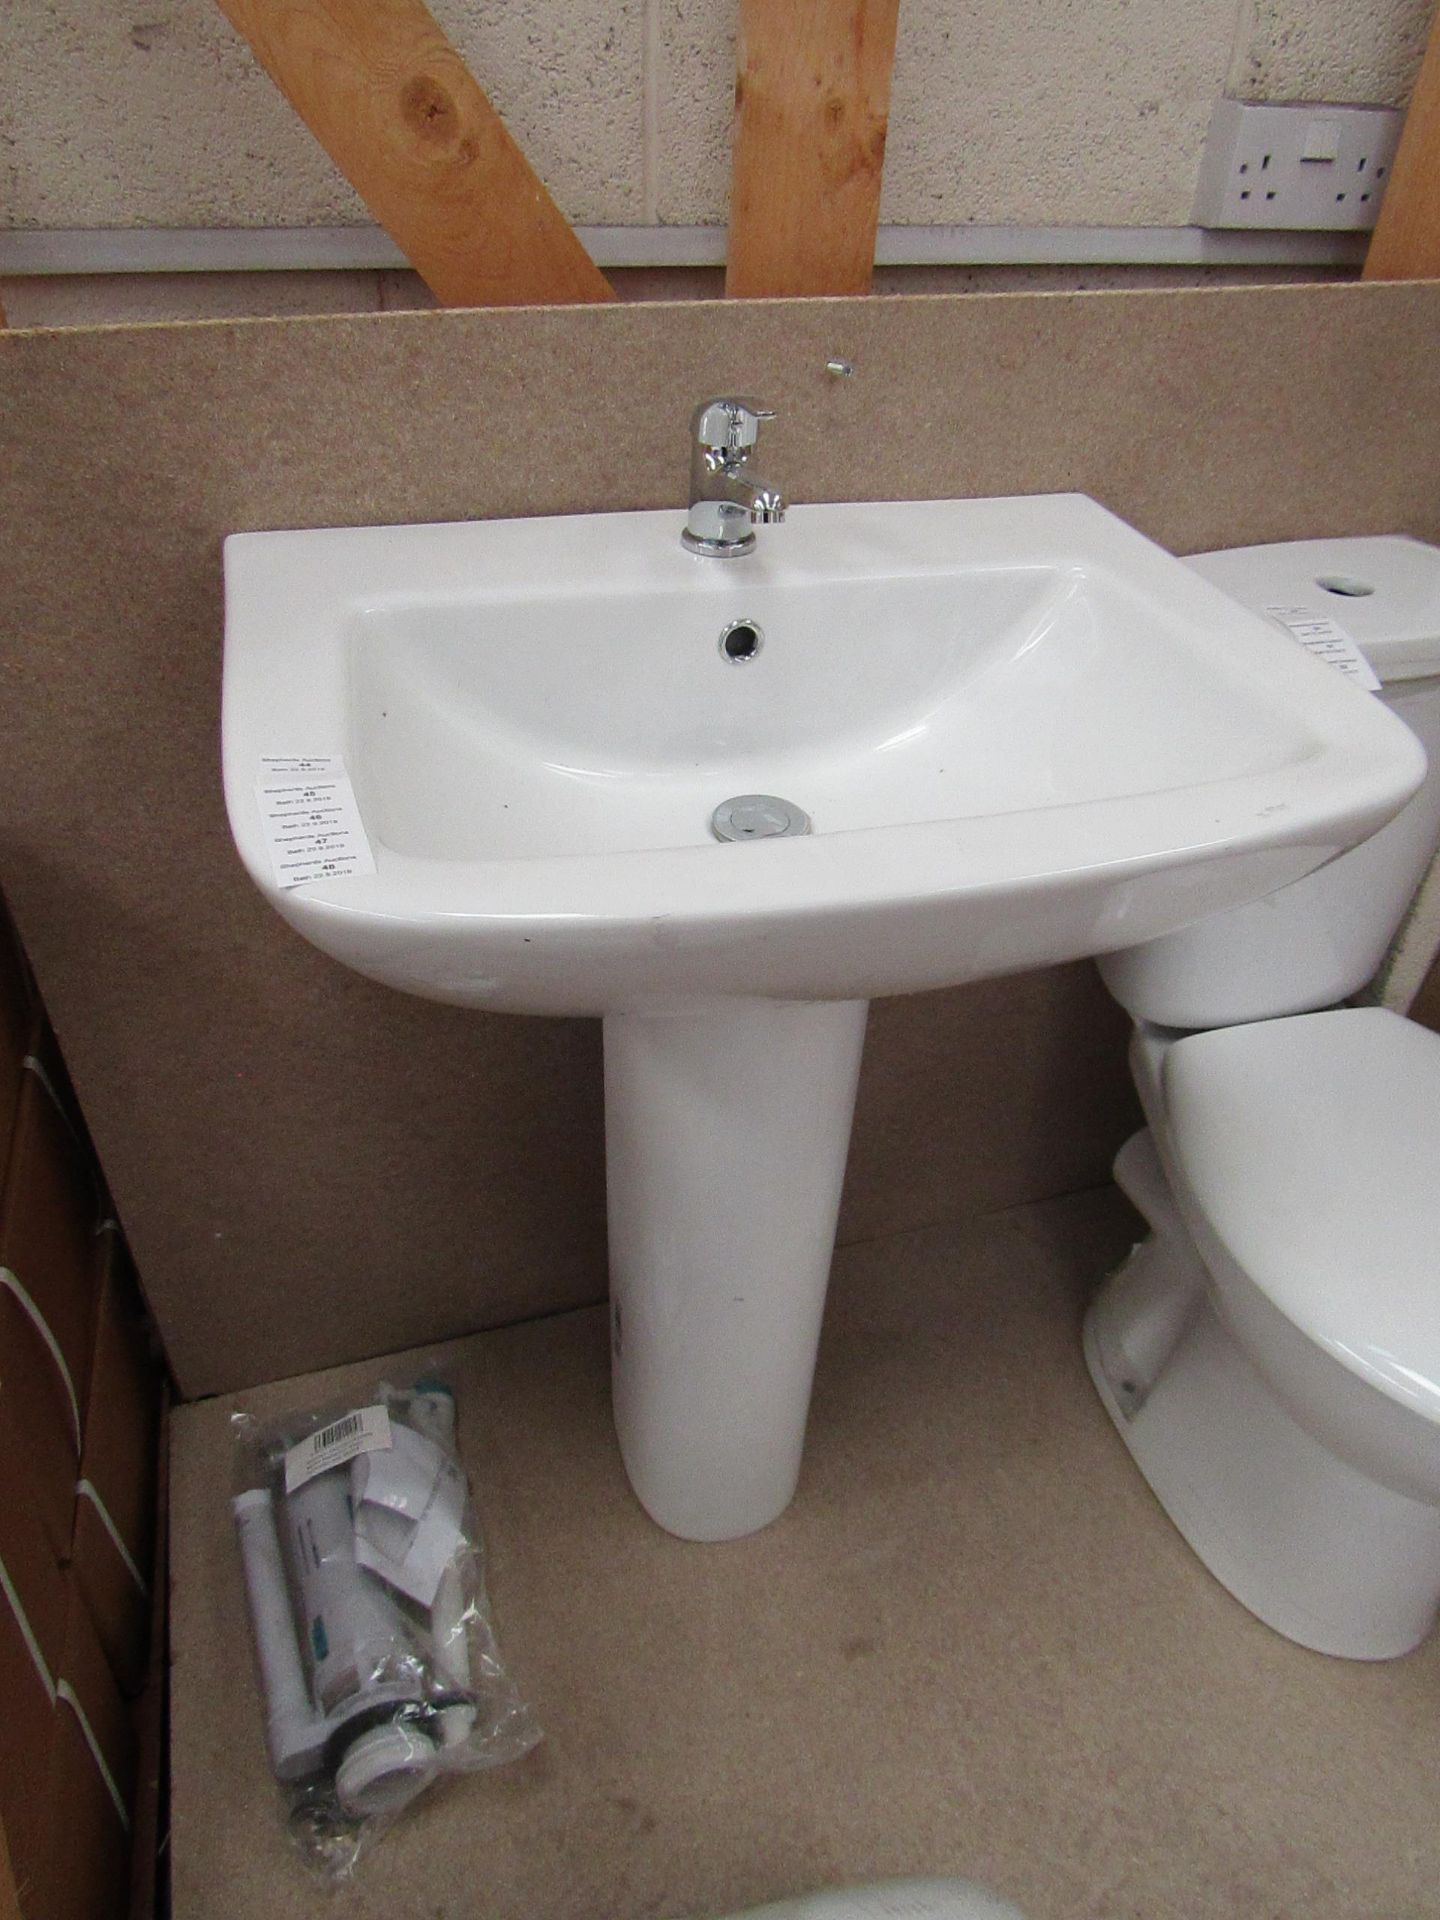 Unbranded Roca Cloakroom basin set that includes a 620mm 1 tap hole sink with full pedestal and a